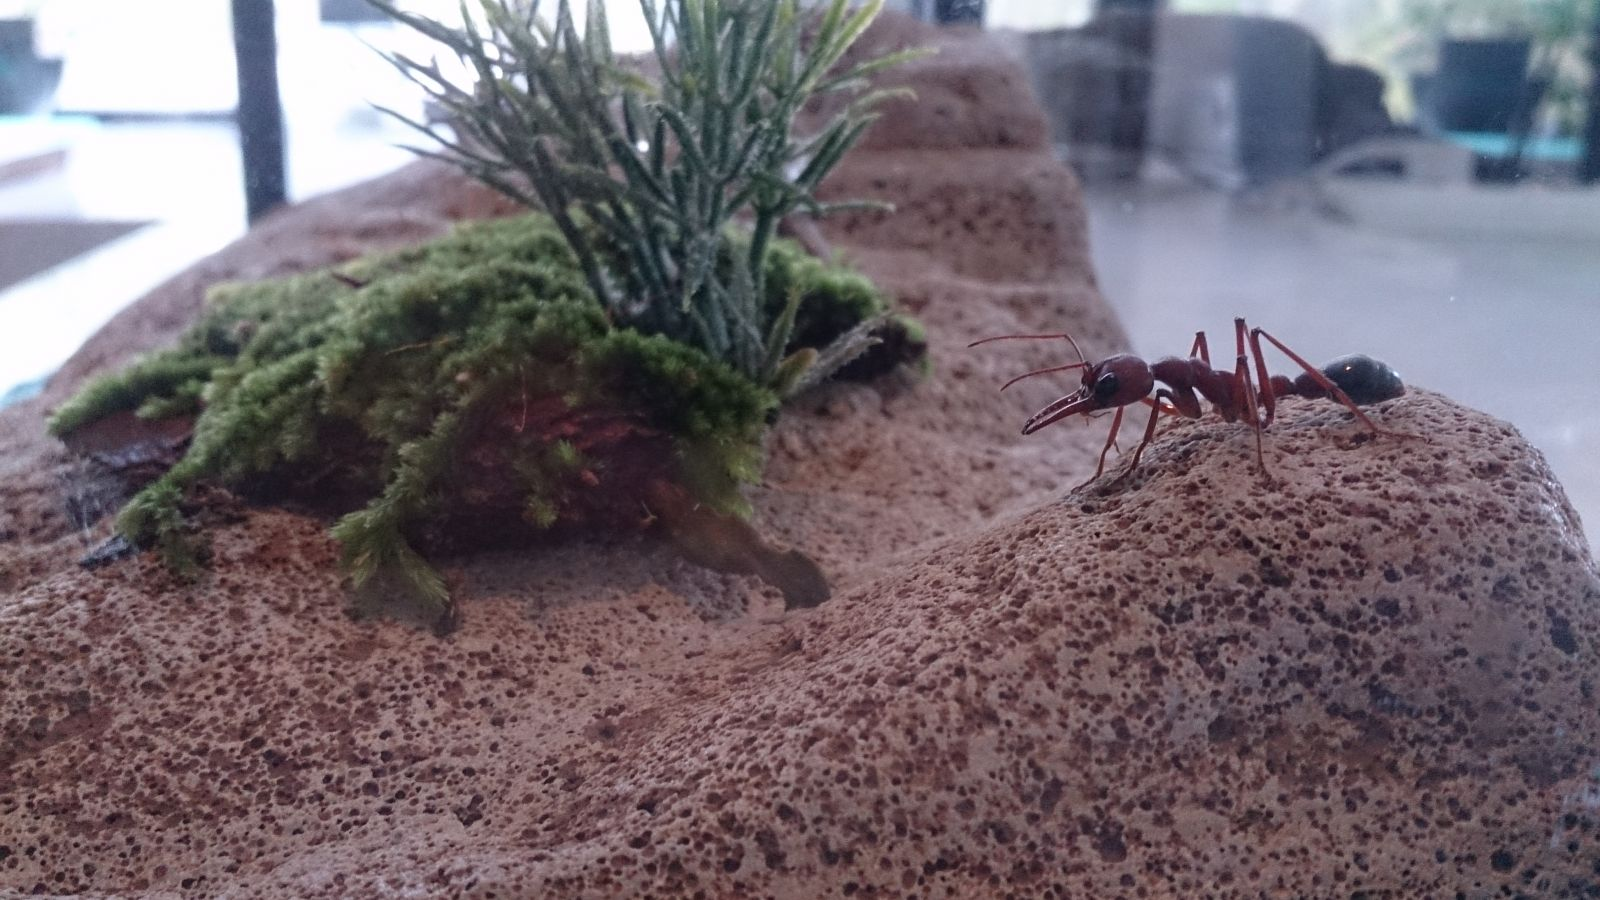 Bull ant on a hill